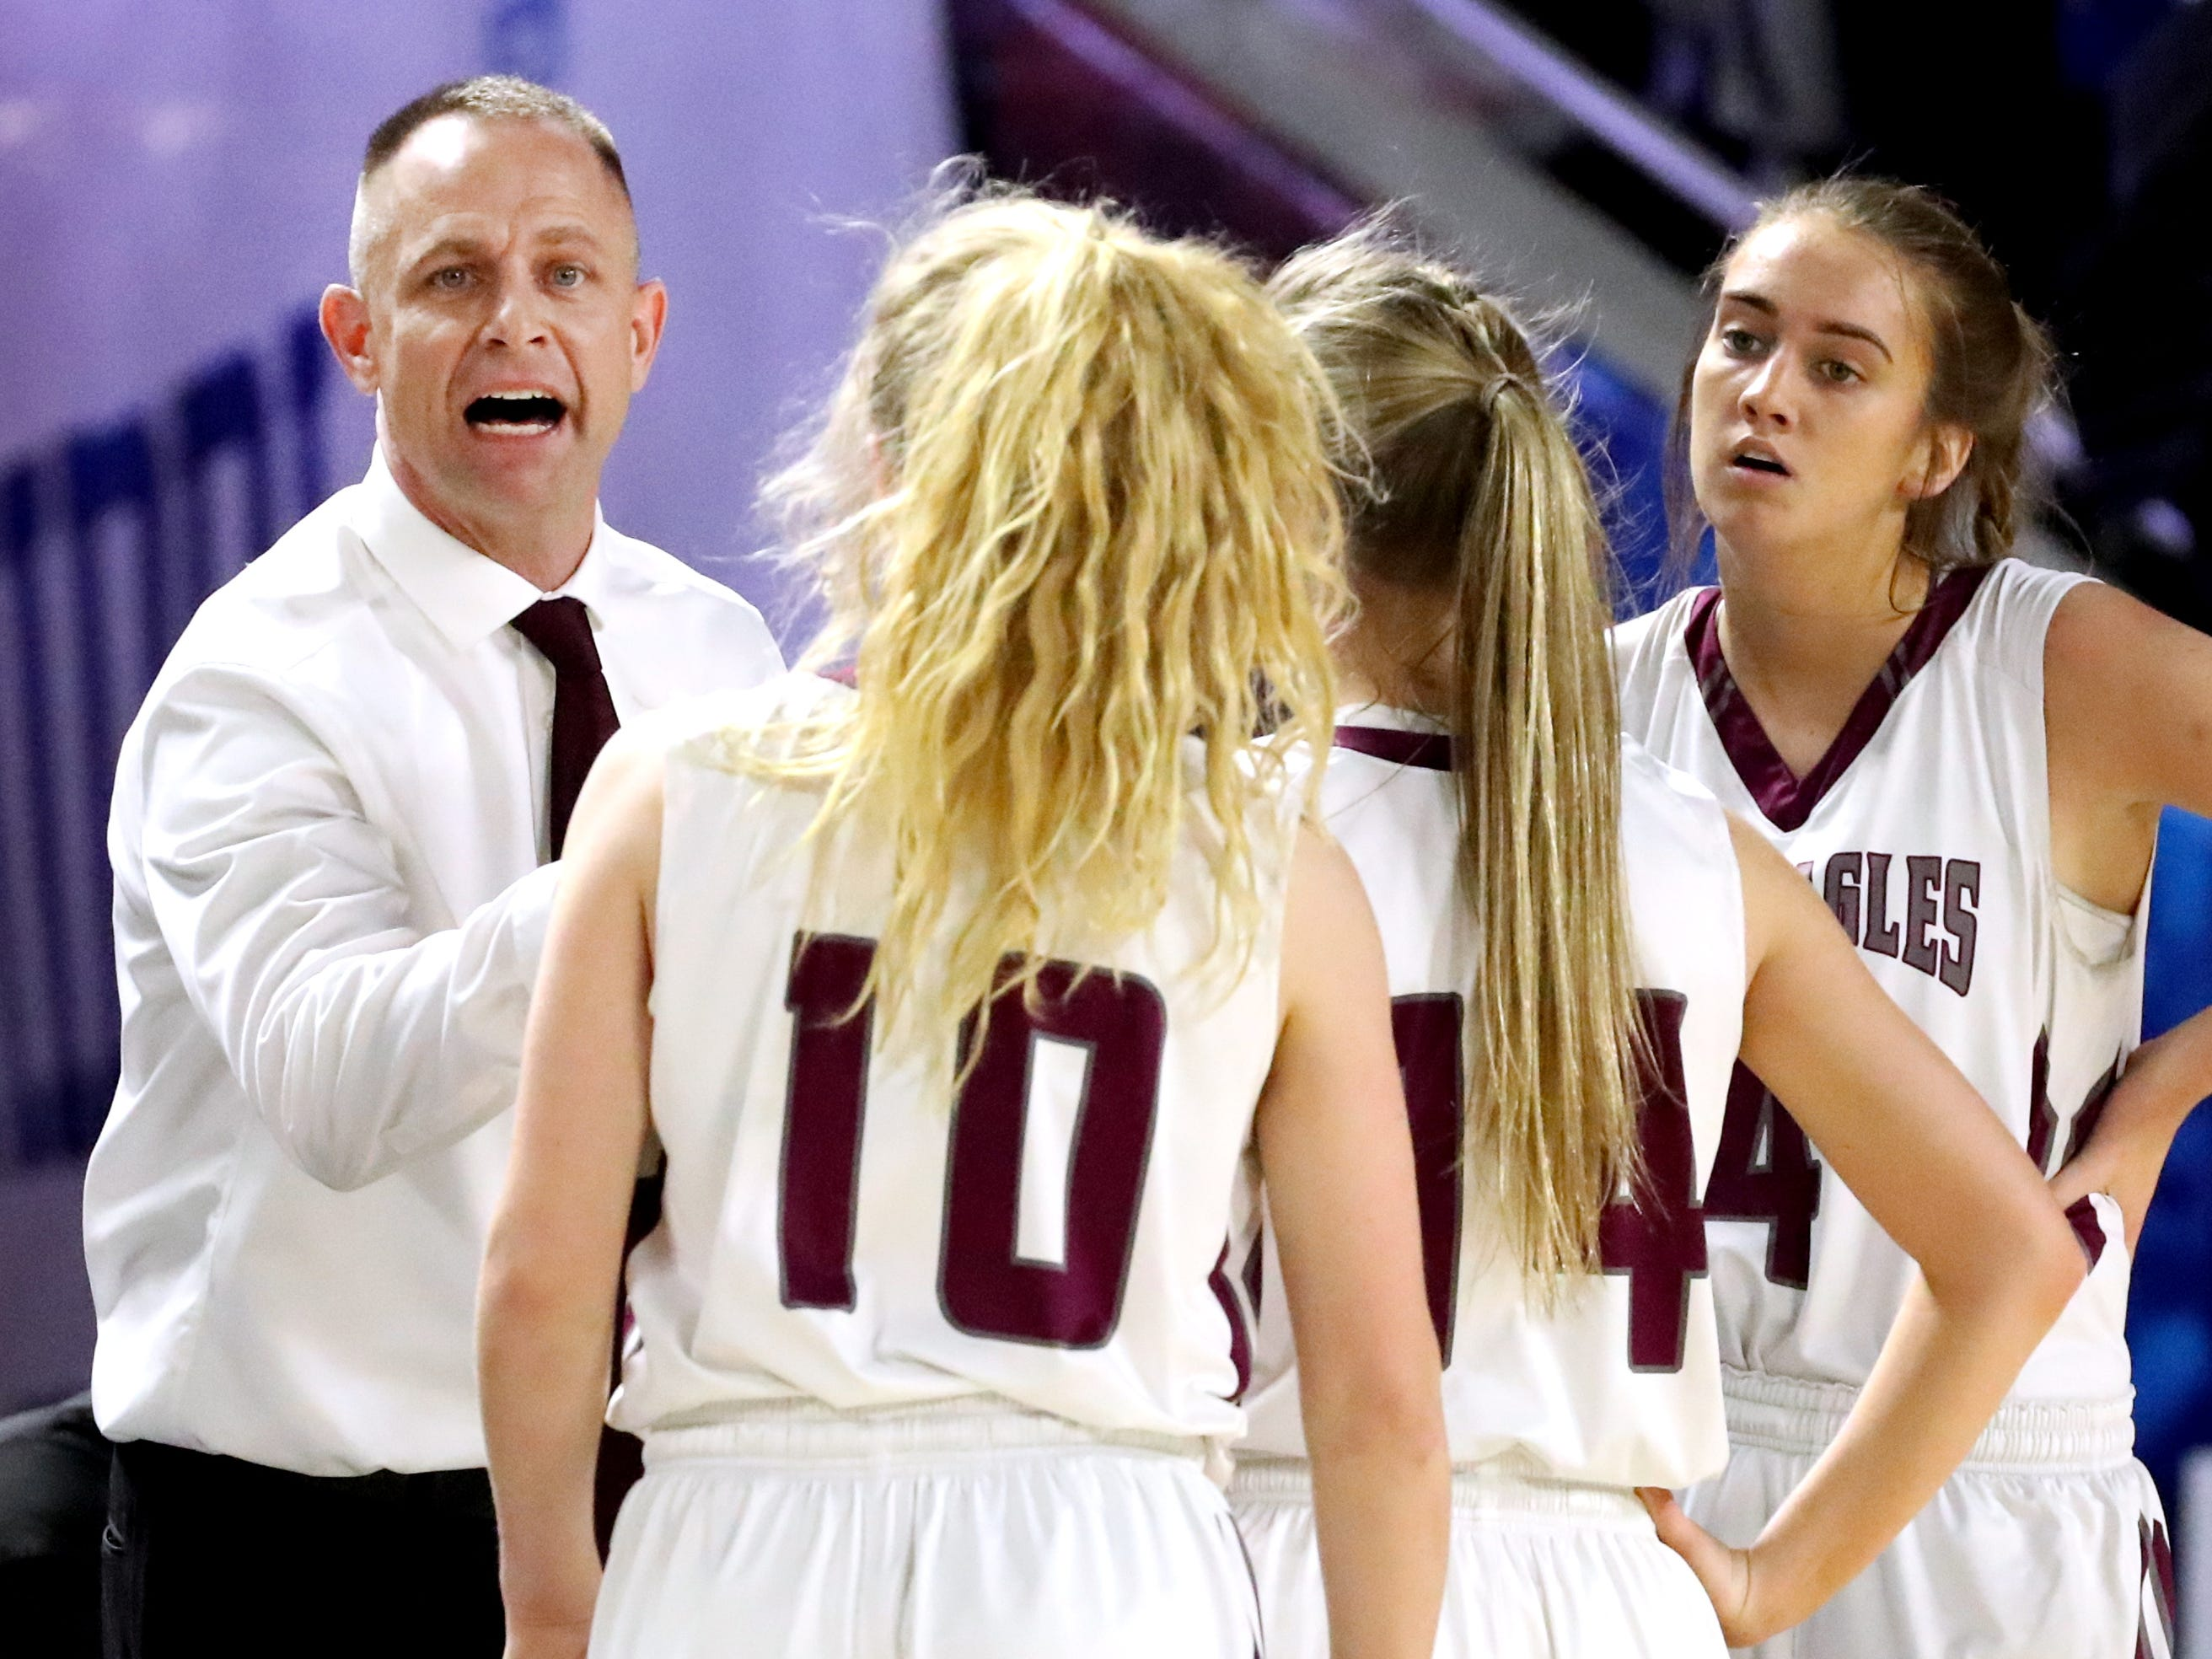 Eagleville's head coach Chris Lynch talks with his players during a free throw during the quarterfinal round of the TSSAA Div. 1 Class A Girls State Tournament Midway, on Thursday, March 7, 2019, at Murphy Center in Murfreesboro, Tenn.